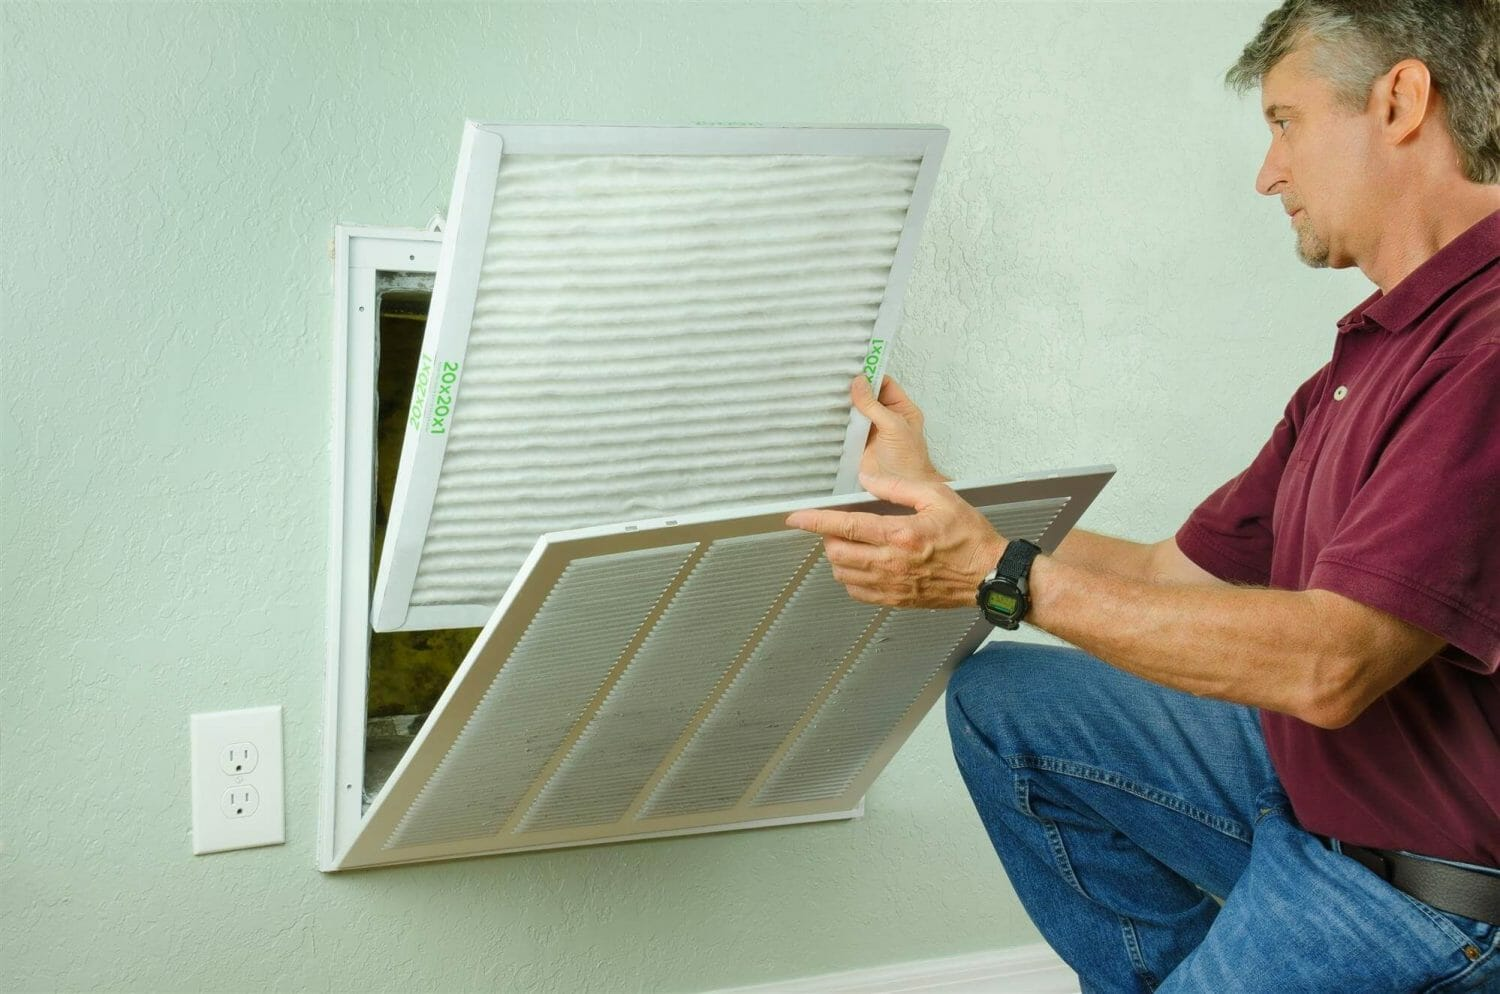 Always Do This Before Calling Home AC Repair: 8 Money-Saving DIY Tips